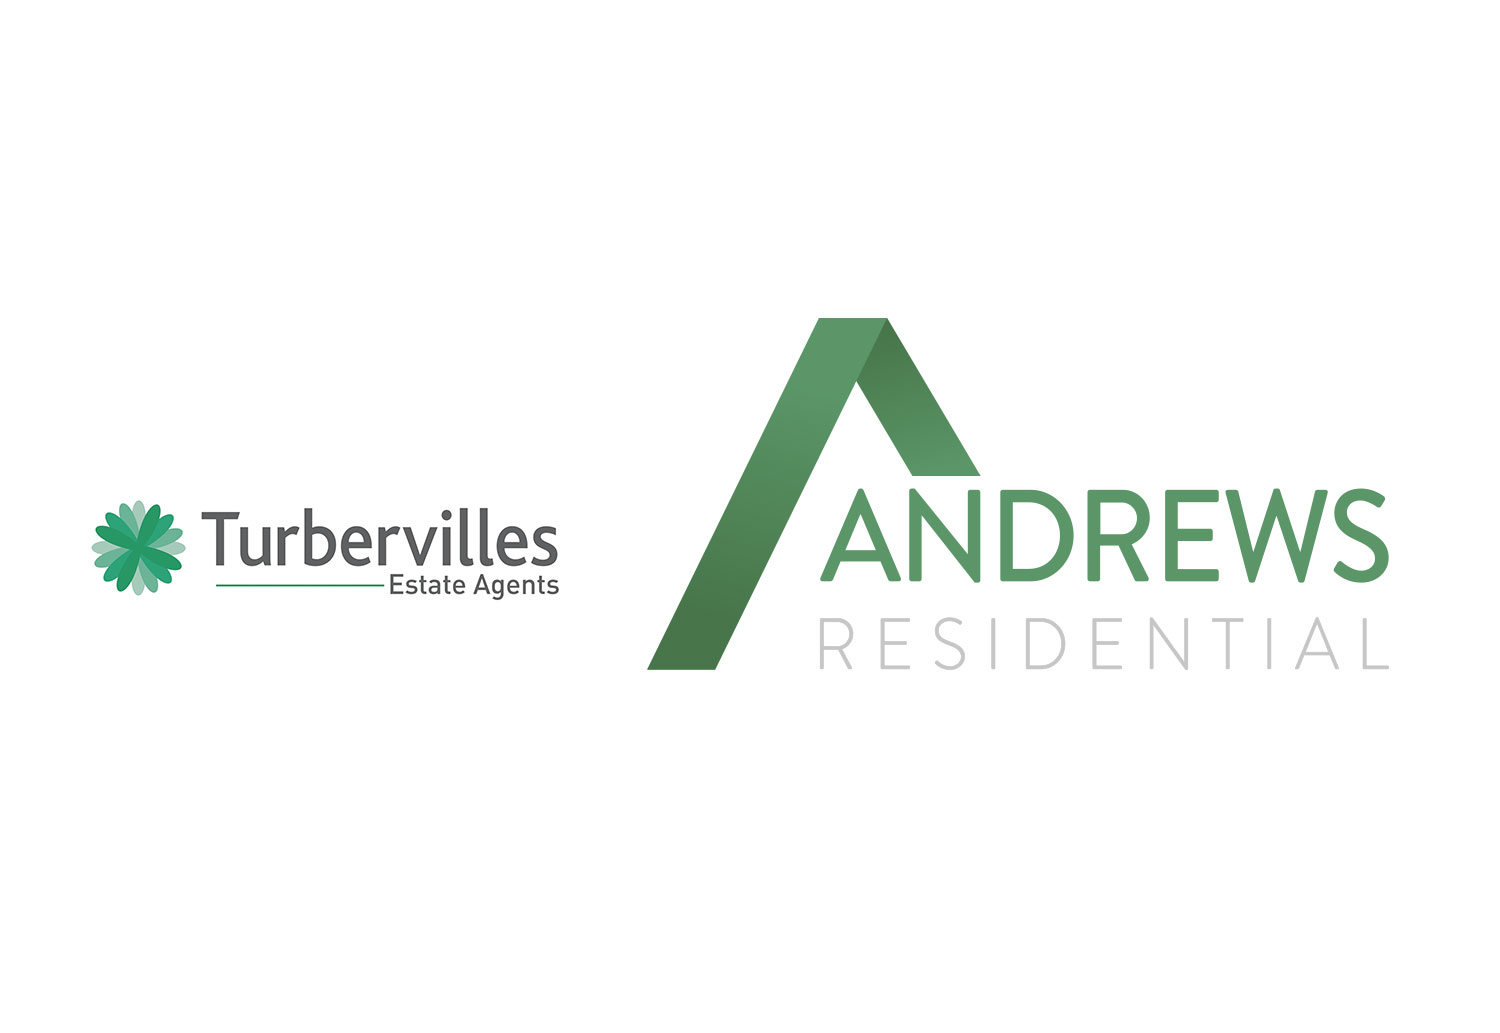 The old Turbervilles logo alongside the new Andrews  logo